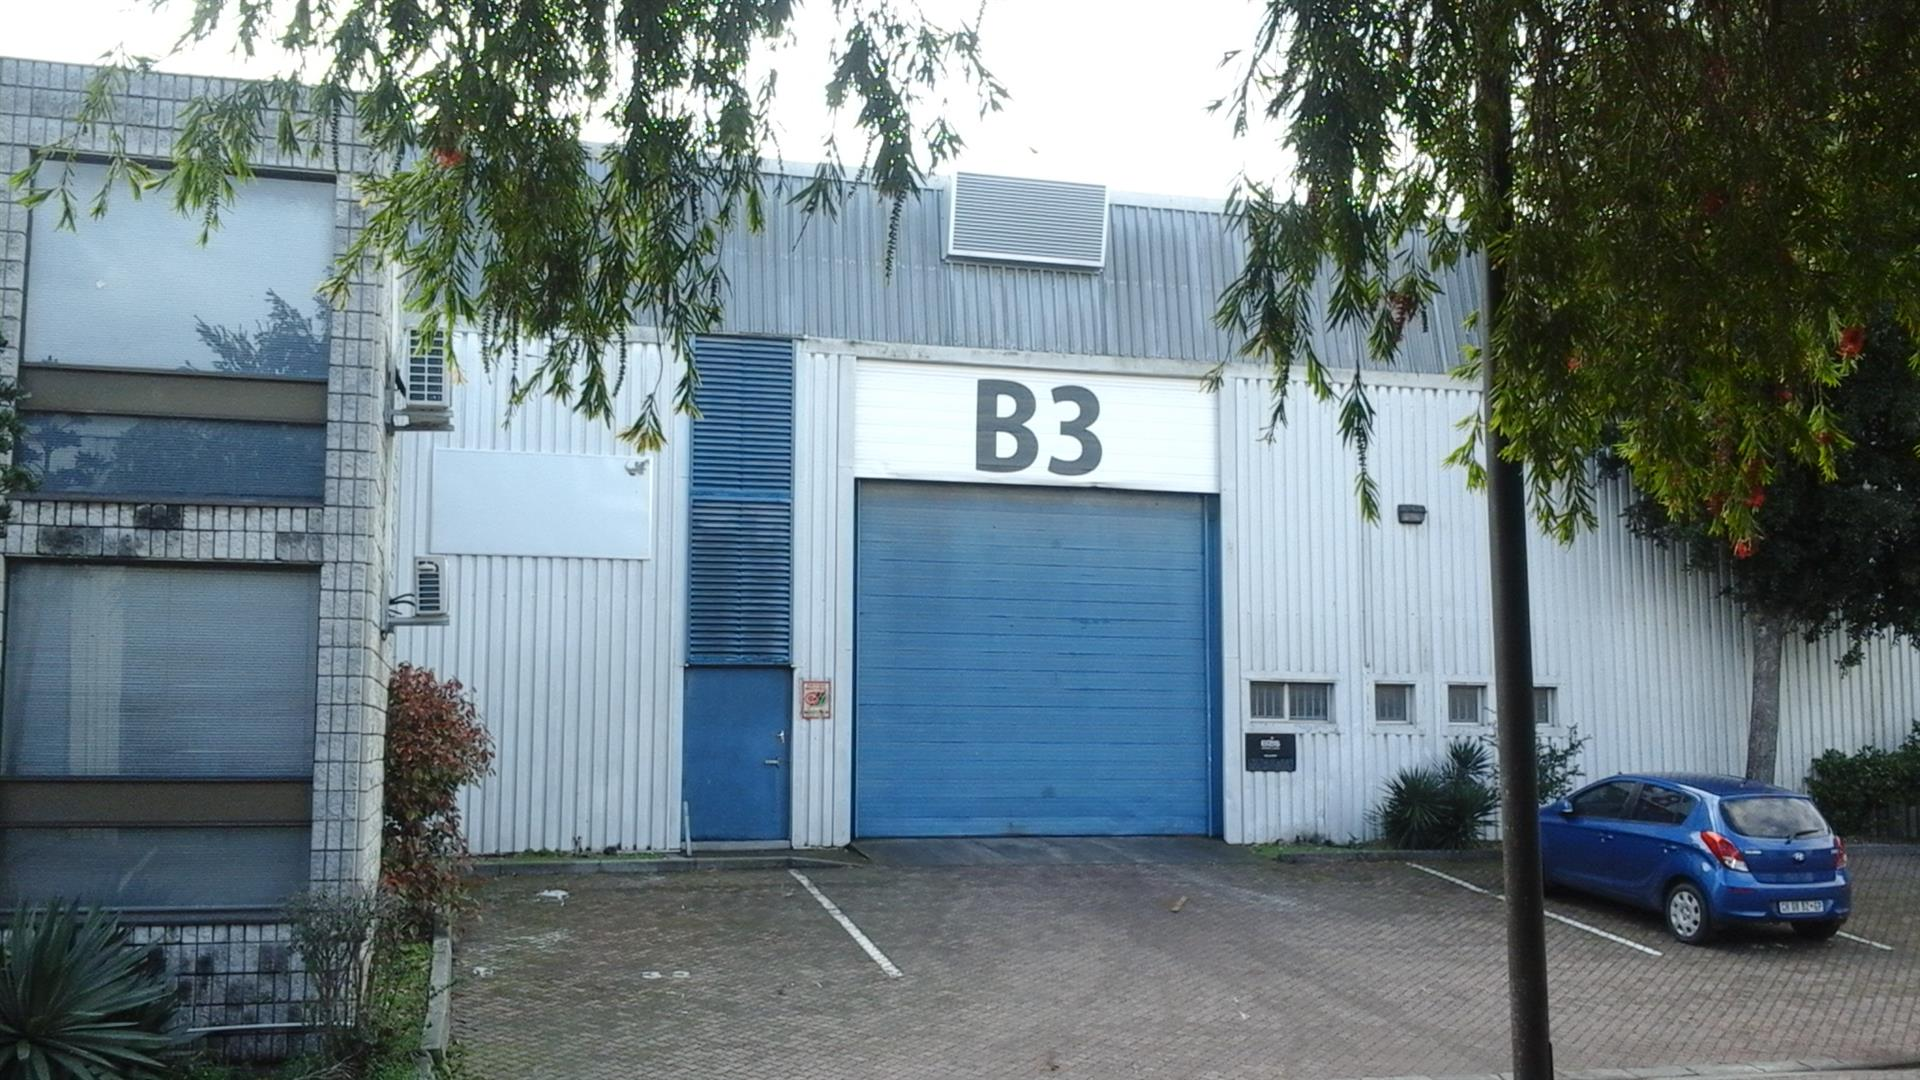 461 m2 STORAGE (factory with toilet - no offices) Sacks Circle Industrial Bellville @ R 50 /m2 = R 23 050 per month + VAT